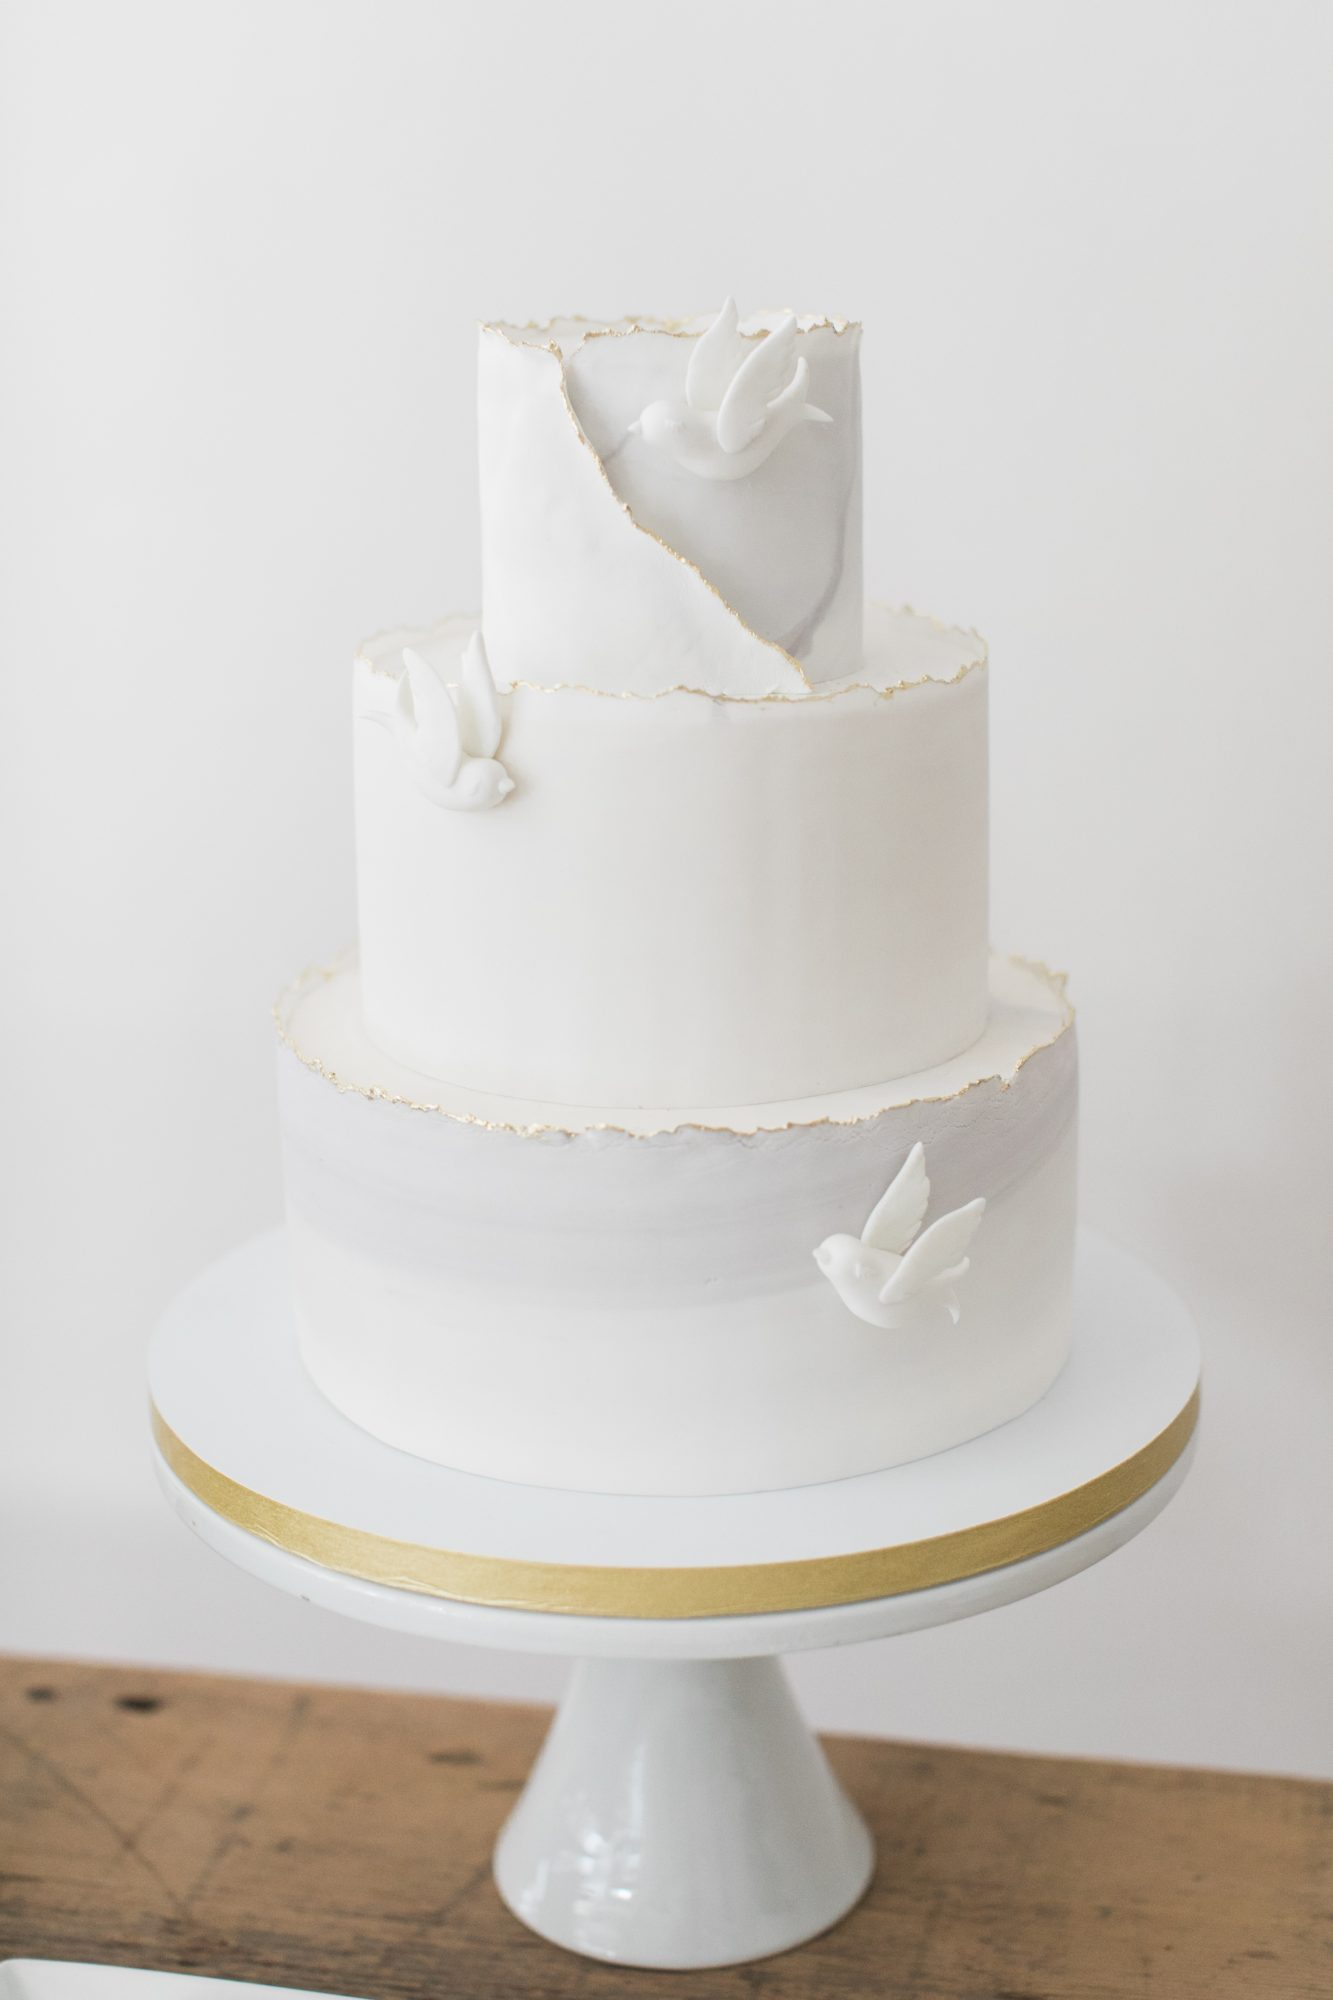 Deckle-Edge White and Gray Cake with Doves